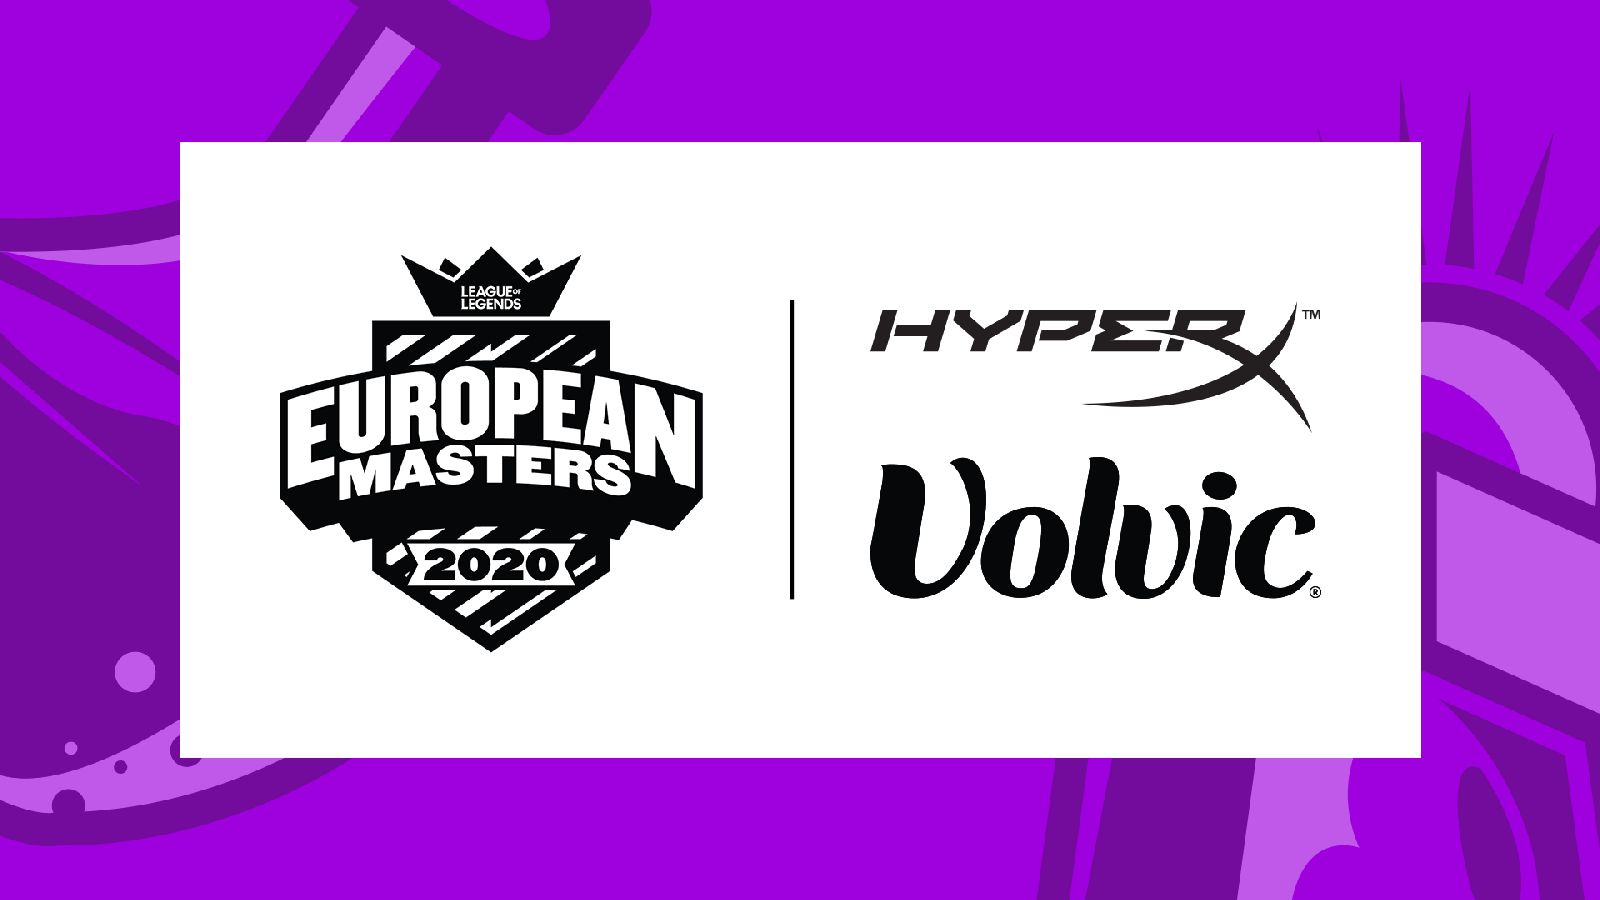 European Masters finds summertime partners in HyperX and Volvic Germany